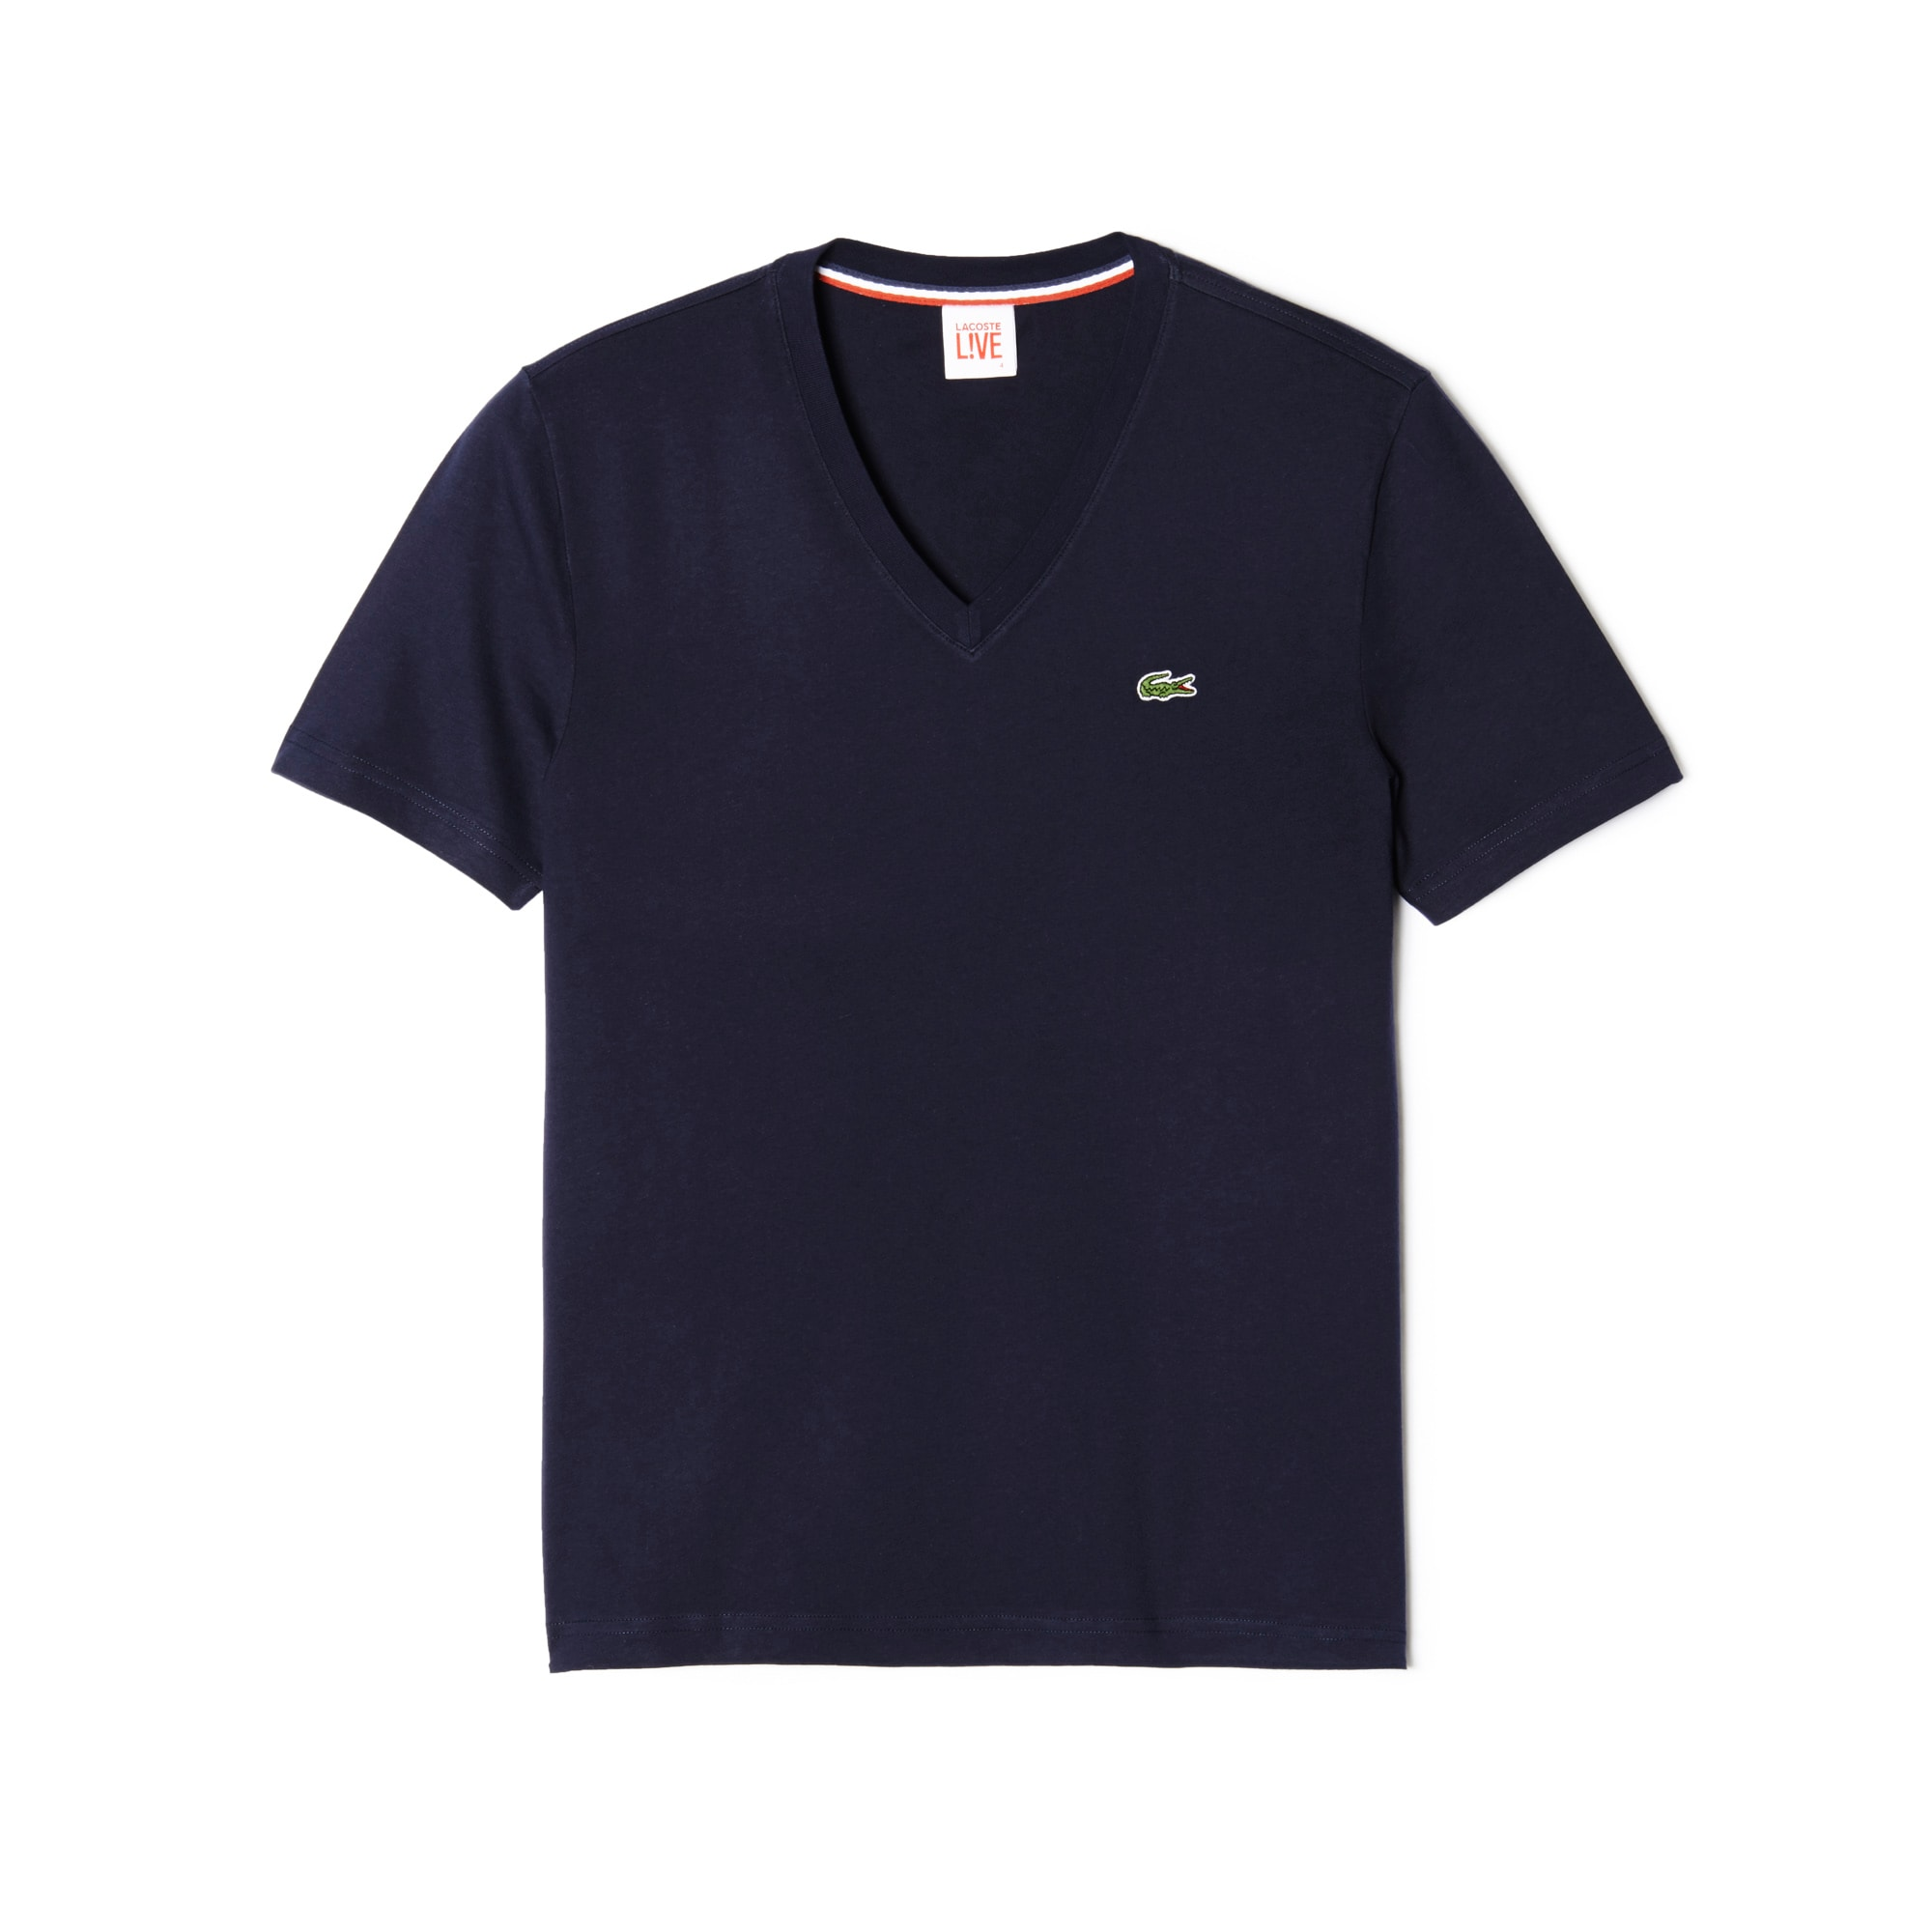 T-shirt Lacoste LIVE ultra-aderente con collo a V in jersey